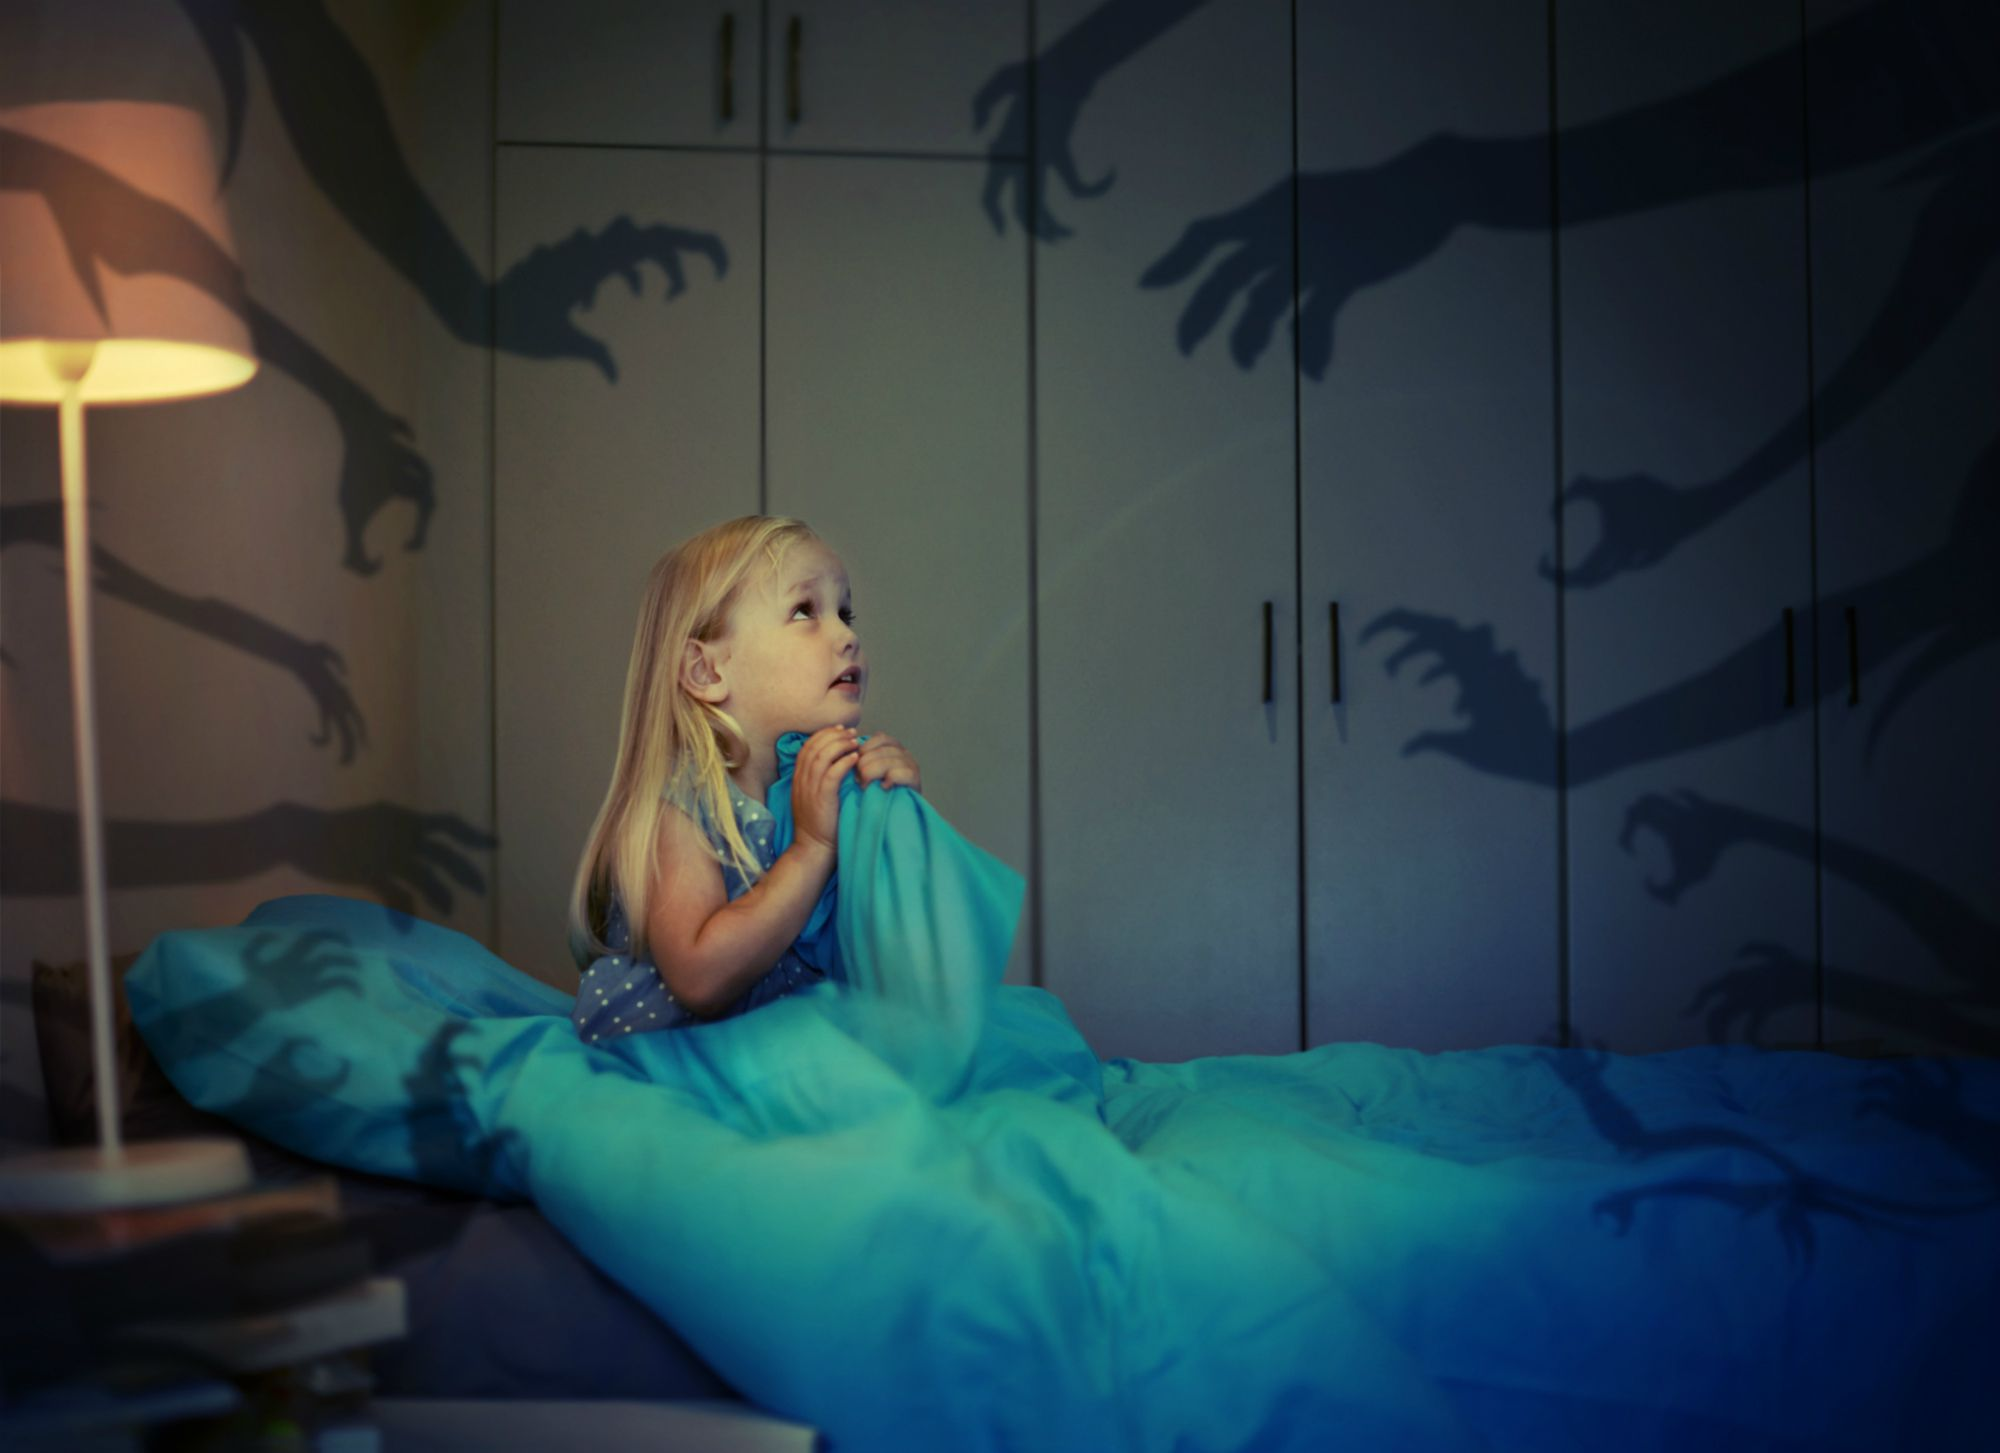 Child in bed with nightmares